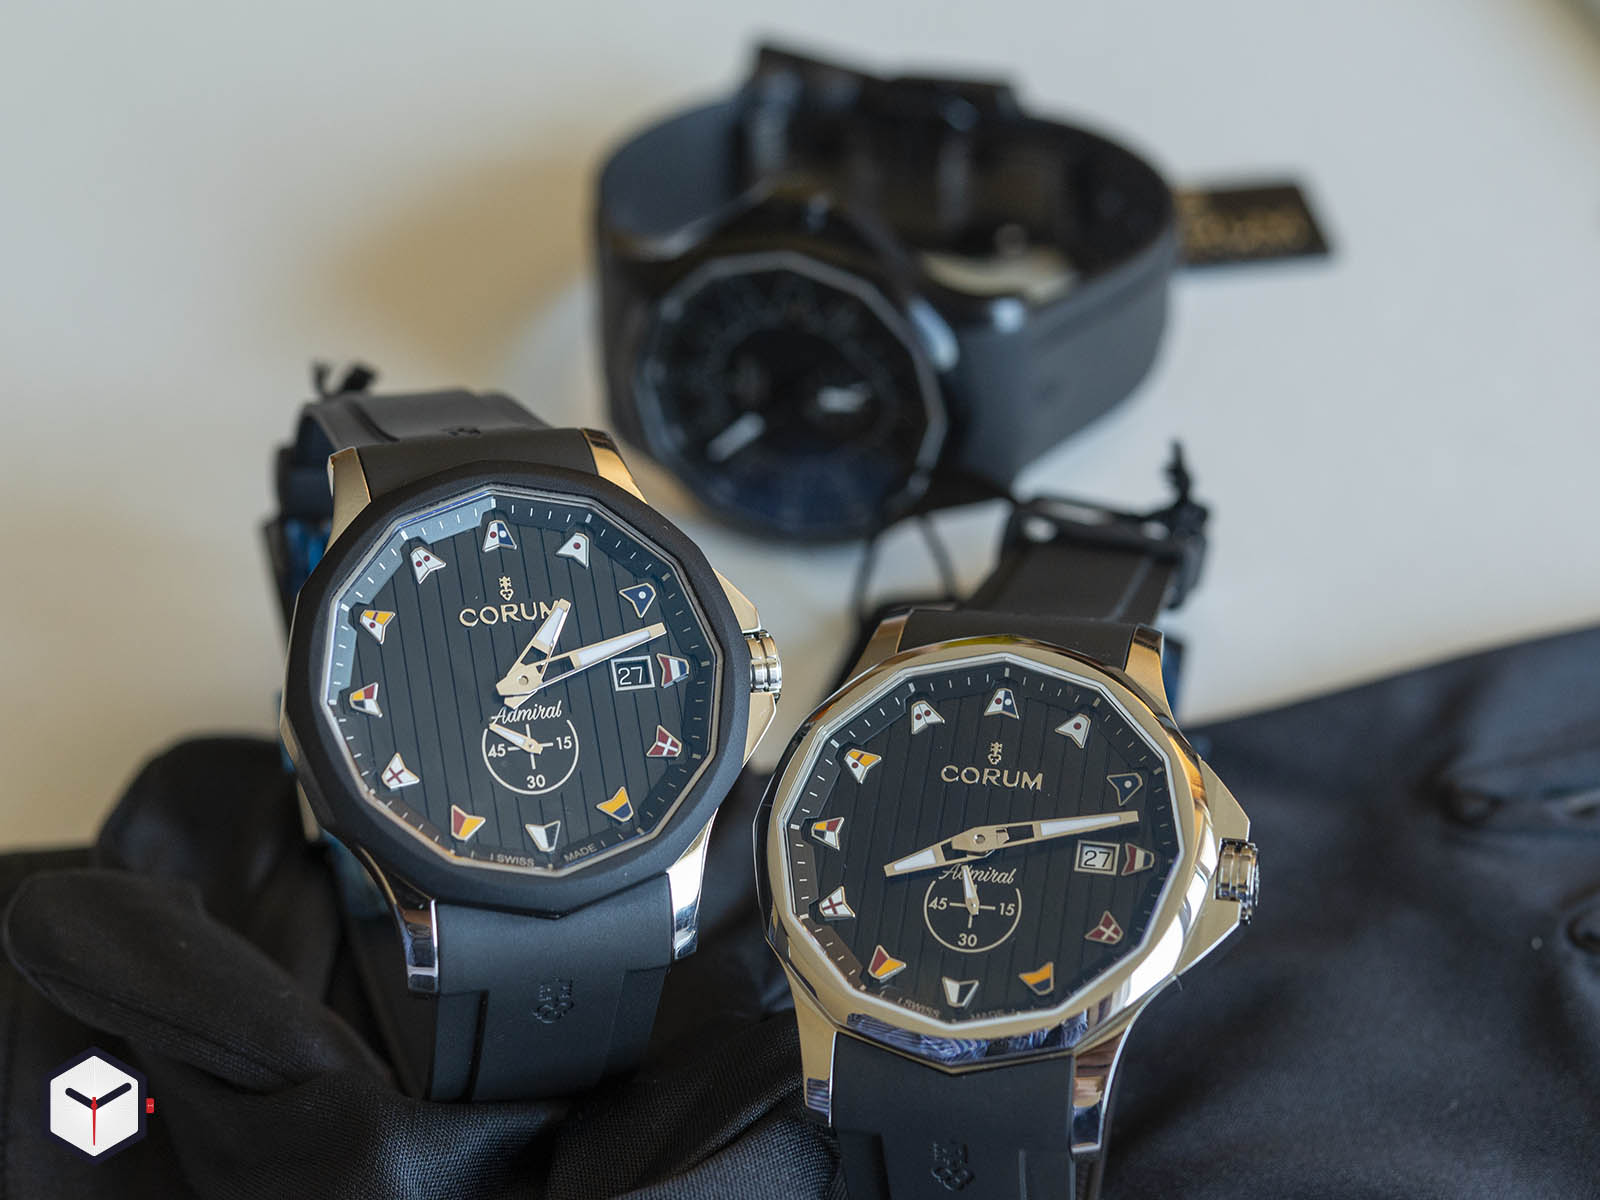 a395-03818-corum-admiral-42-full-black-limited-edition-7.jpg